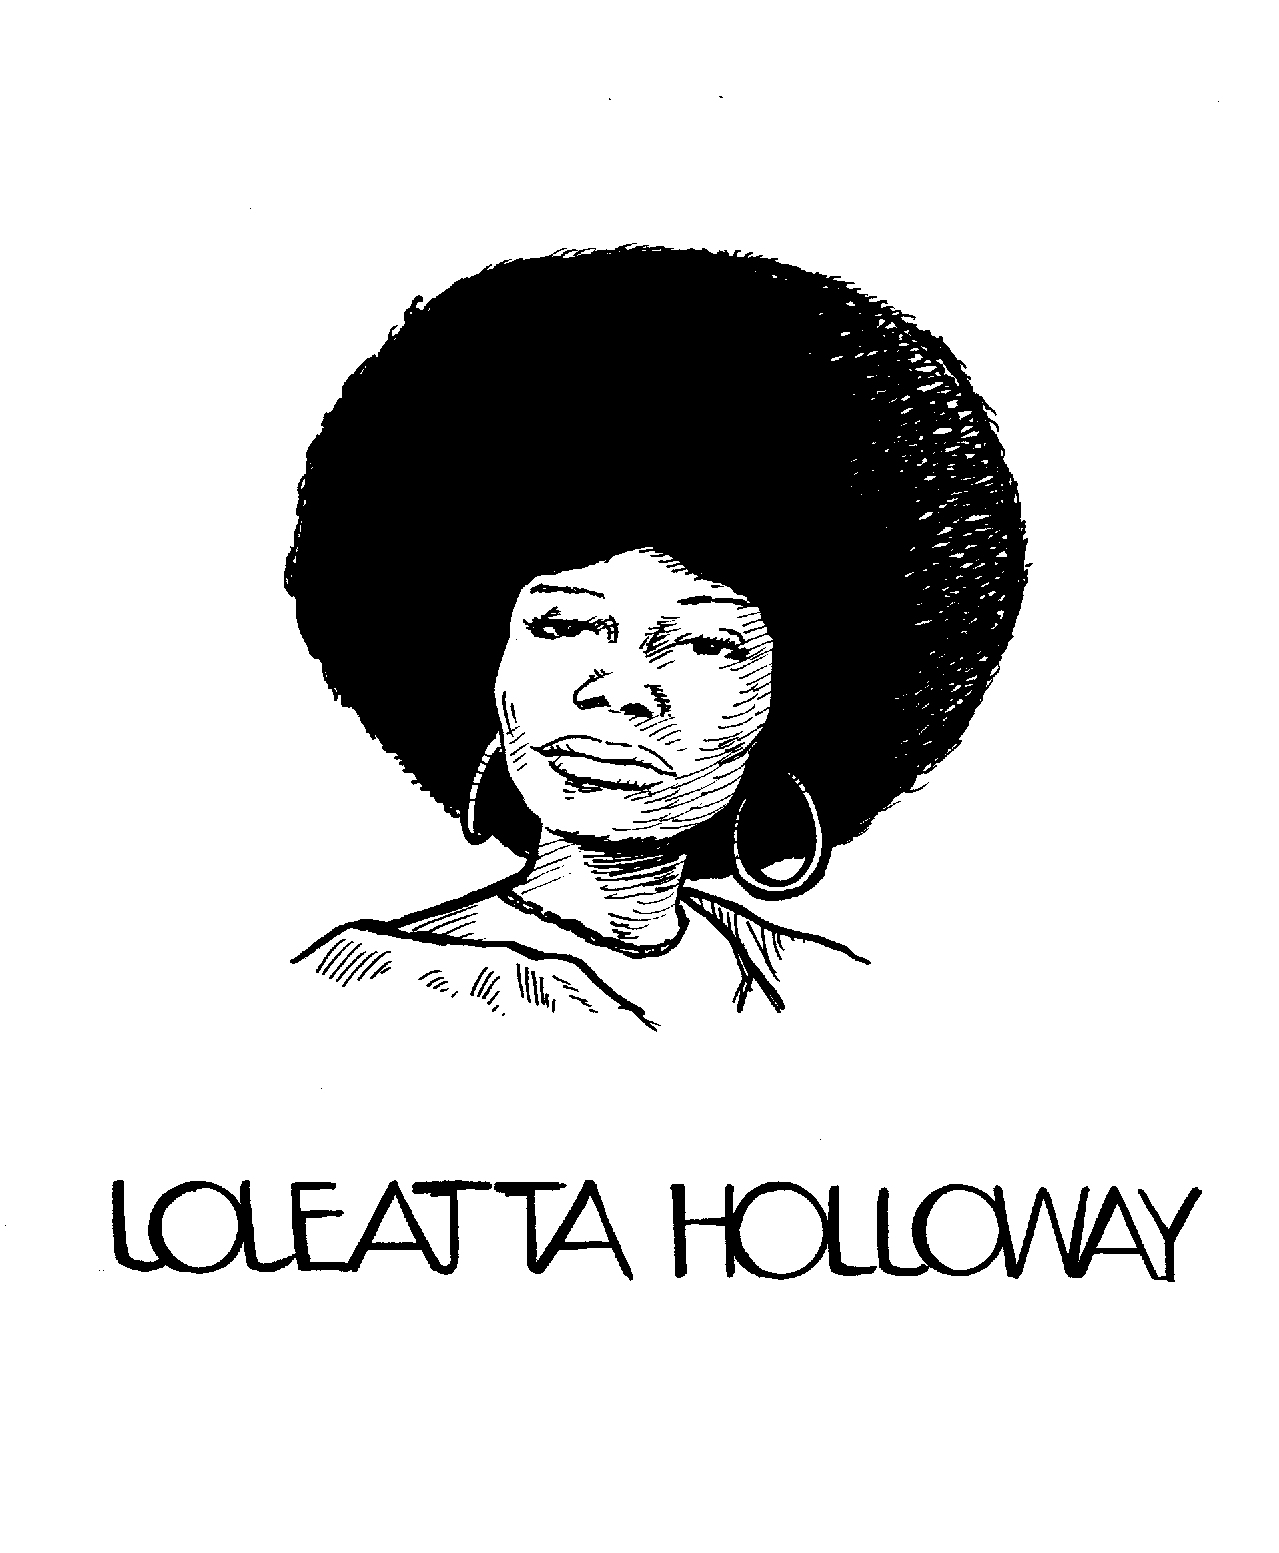 $200, Loleatta Holloway and logo used in Secret History of Chicago Music